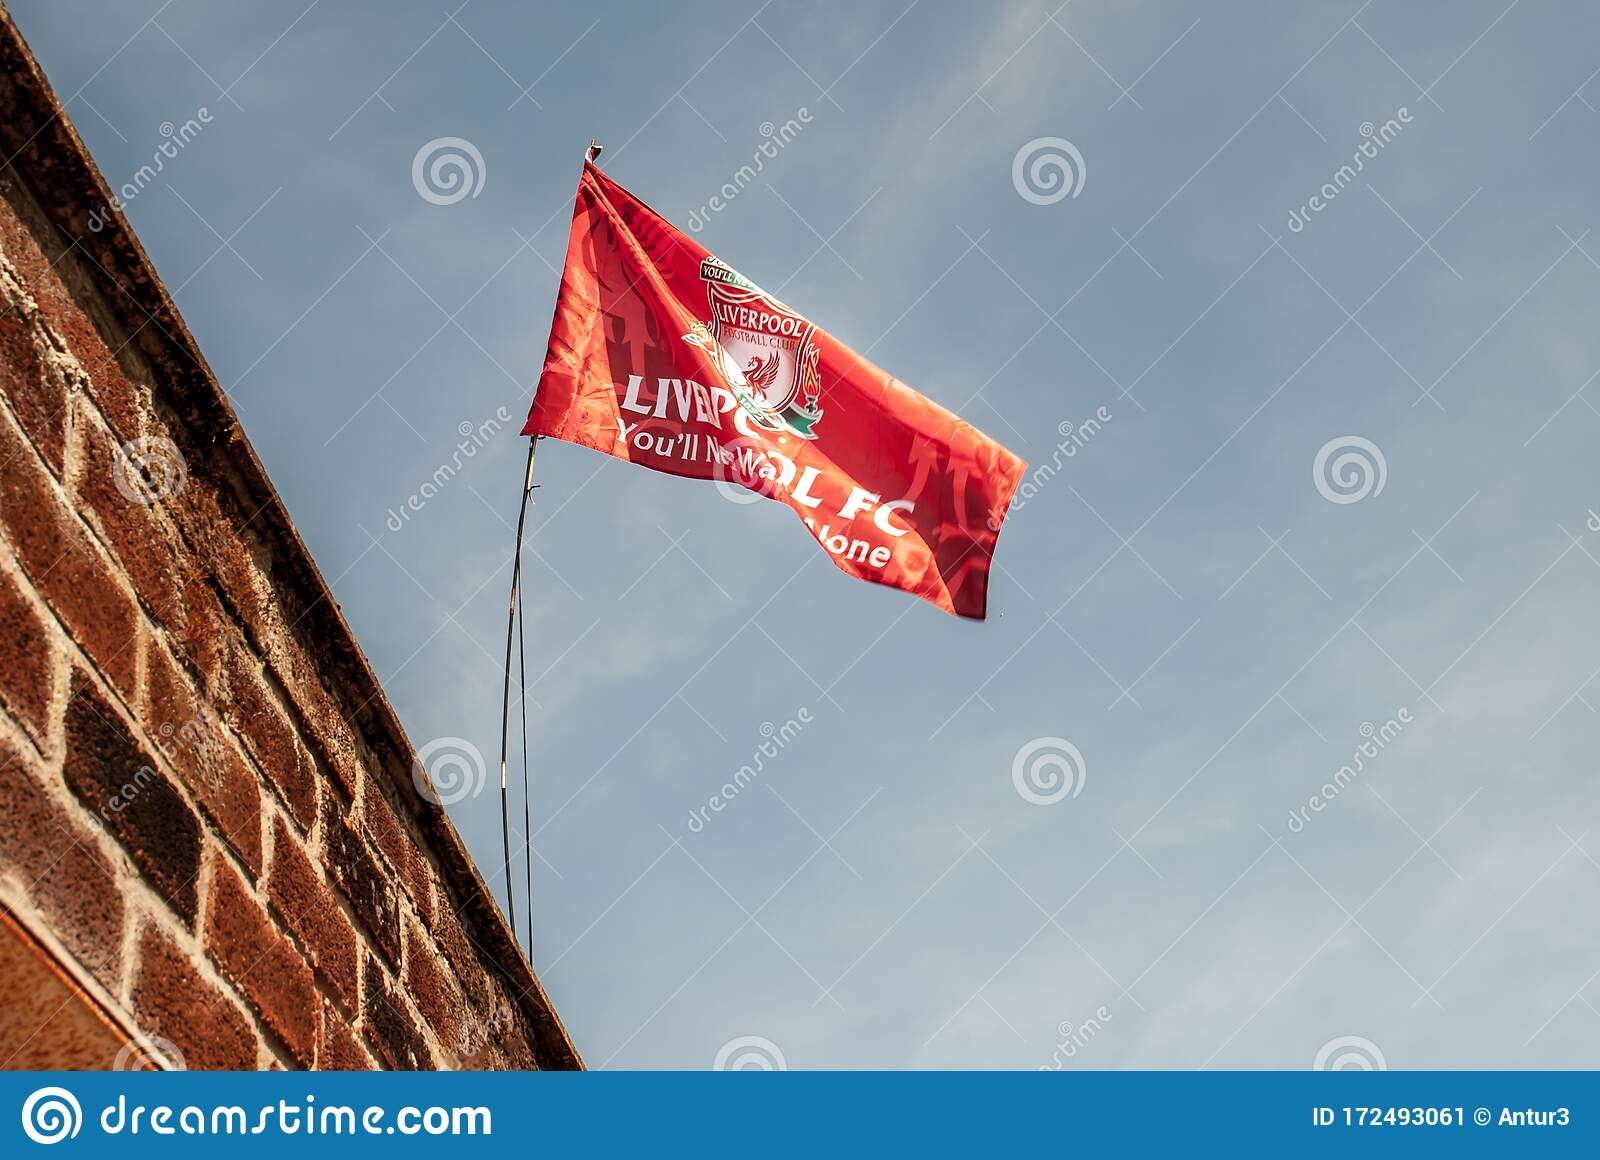 Liverpool F C Flag Waving With The Blue Sky Background Editorial Photo Image Of League England 172493061